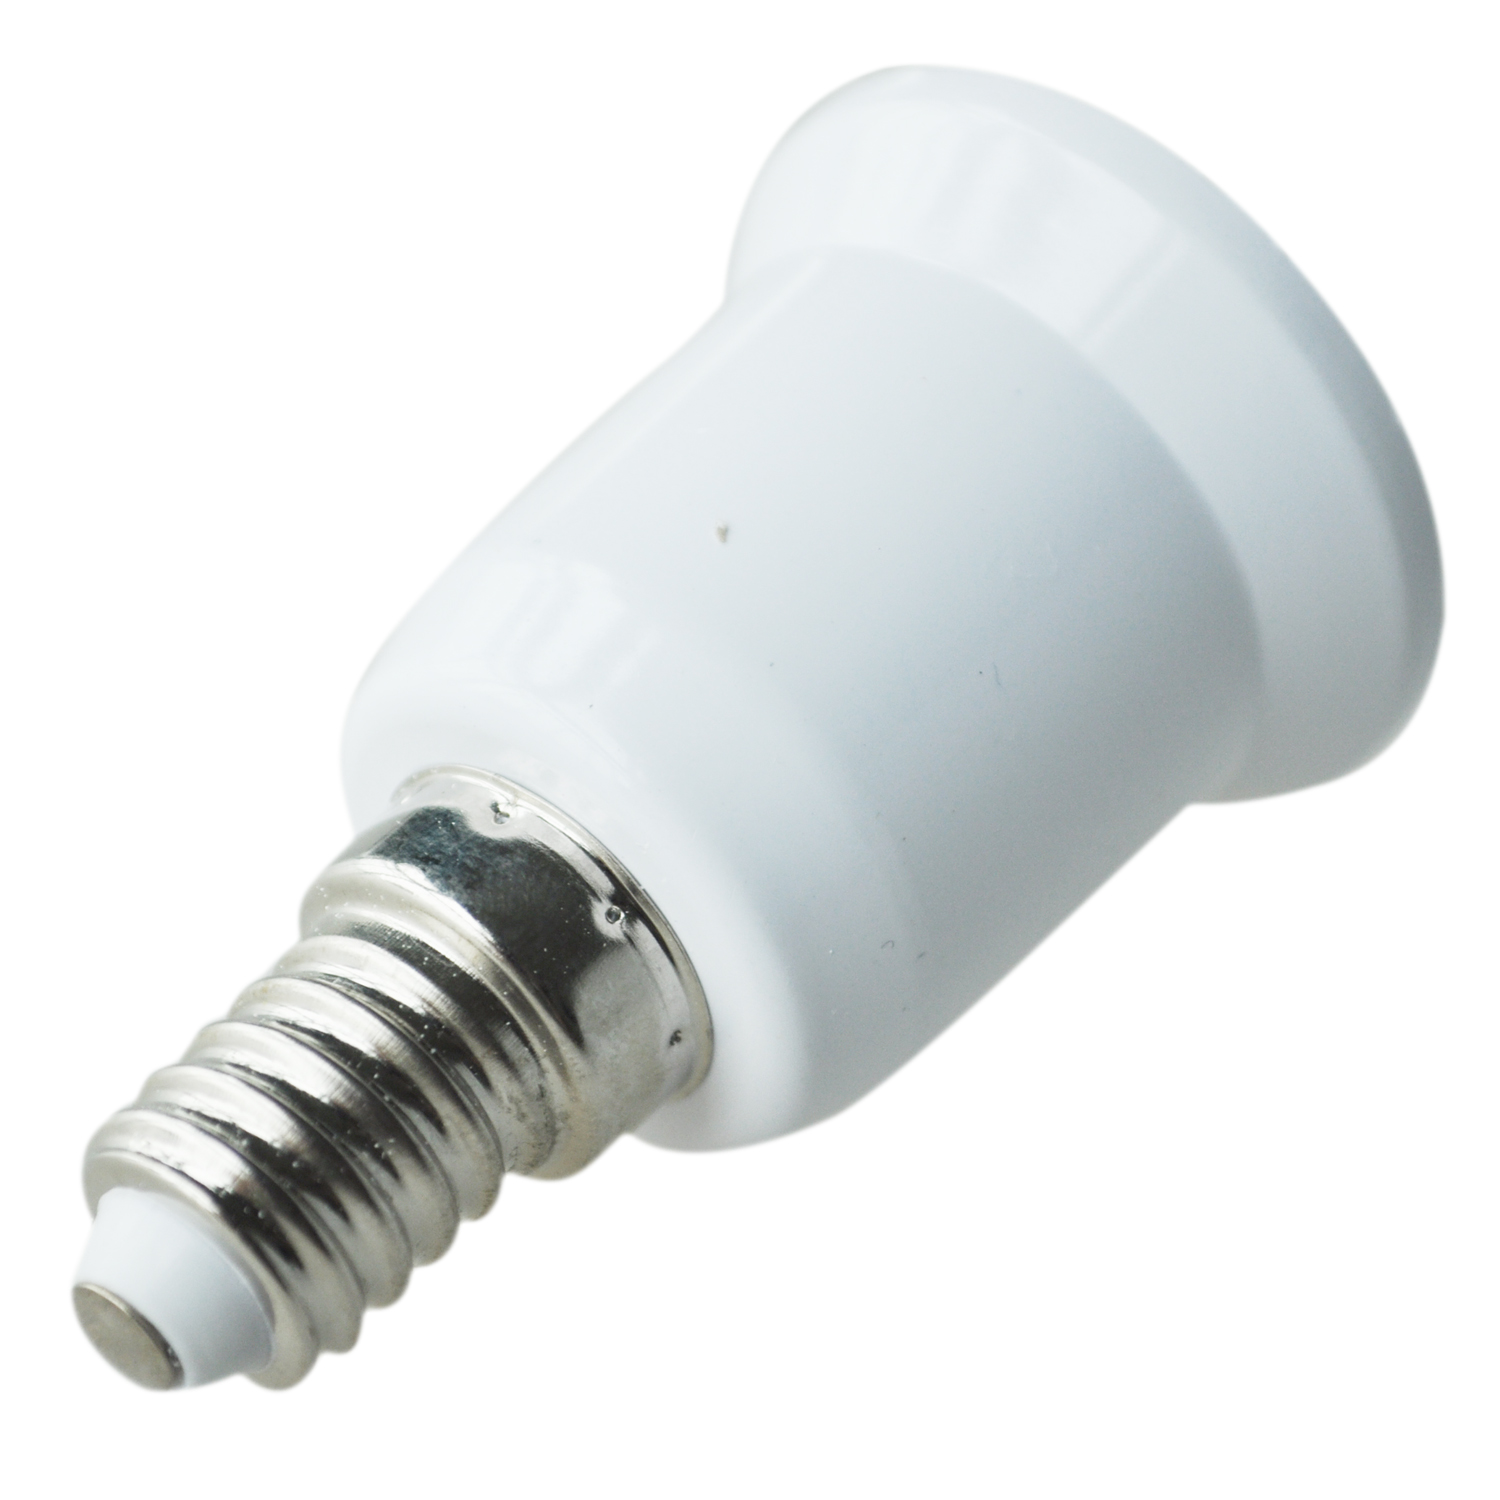 E14 E27 Adapter 3x E14 Auf E27 Led Cfl Gluehlampe Lampen Adapter Konverter